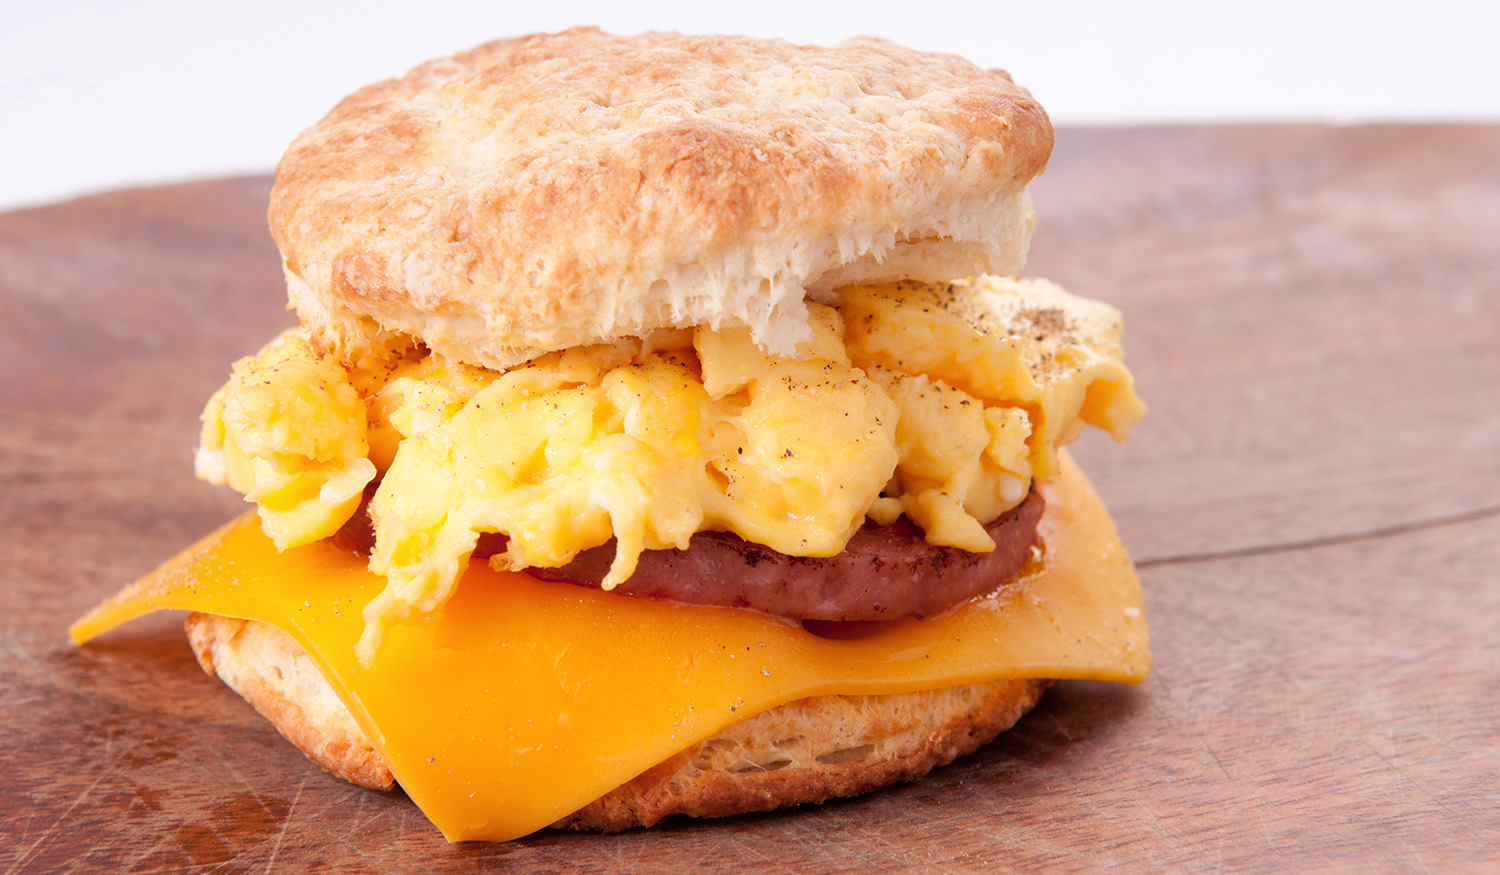 Sausage on a biscuit with cheese